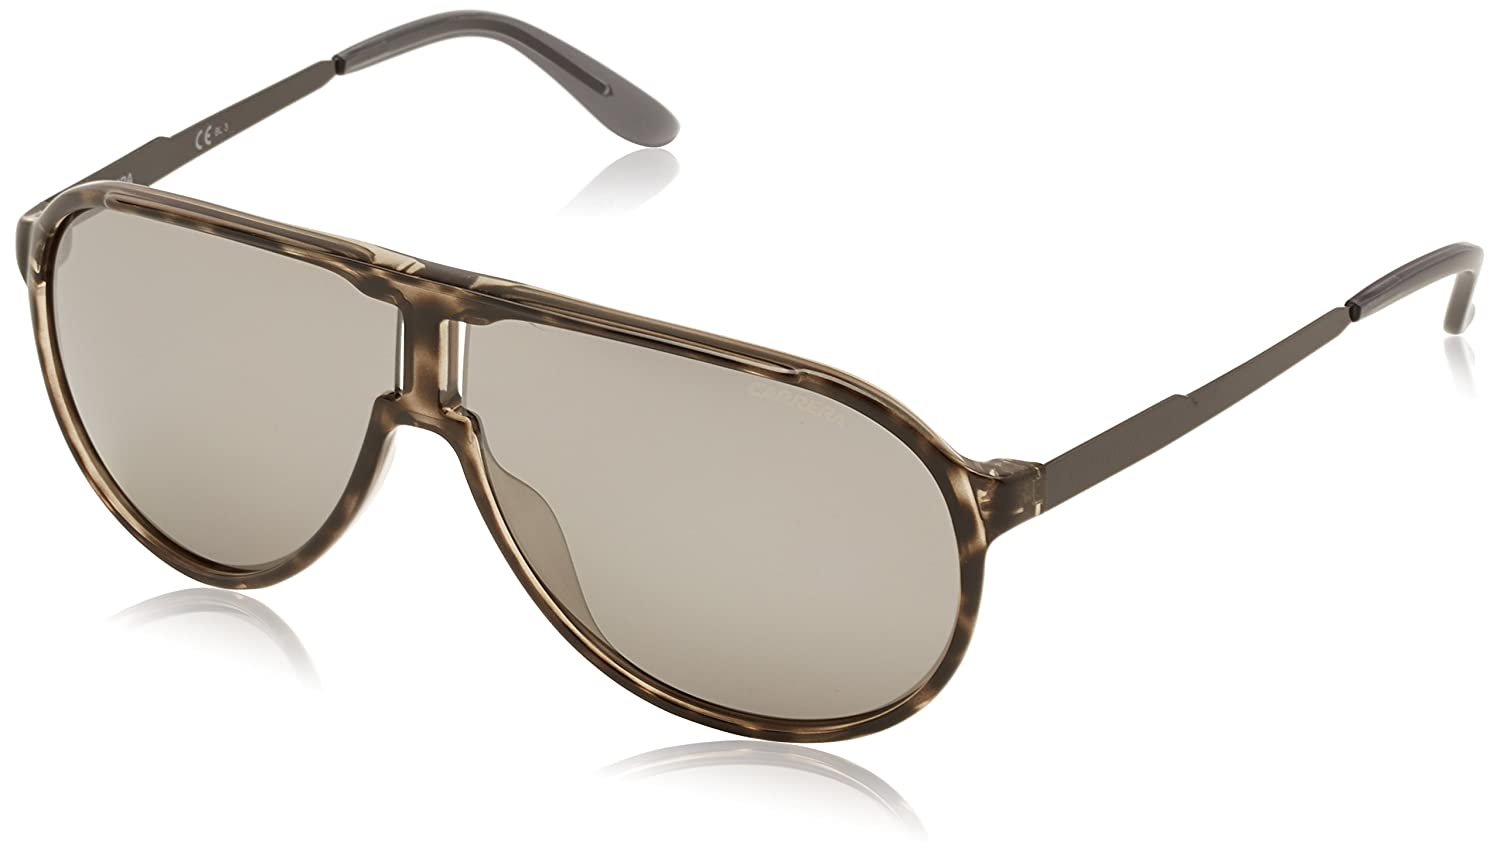 d7efad91db Carrera LAMT4 Print New Champion Sunglasses Lens Category 3: Amazon.in:  Clothing & Accessories